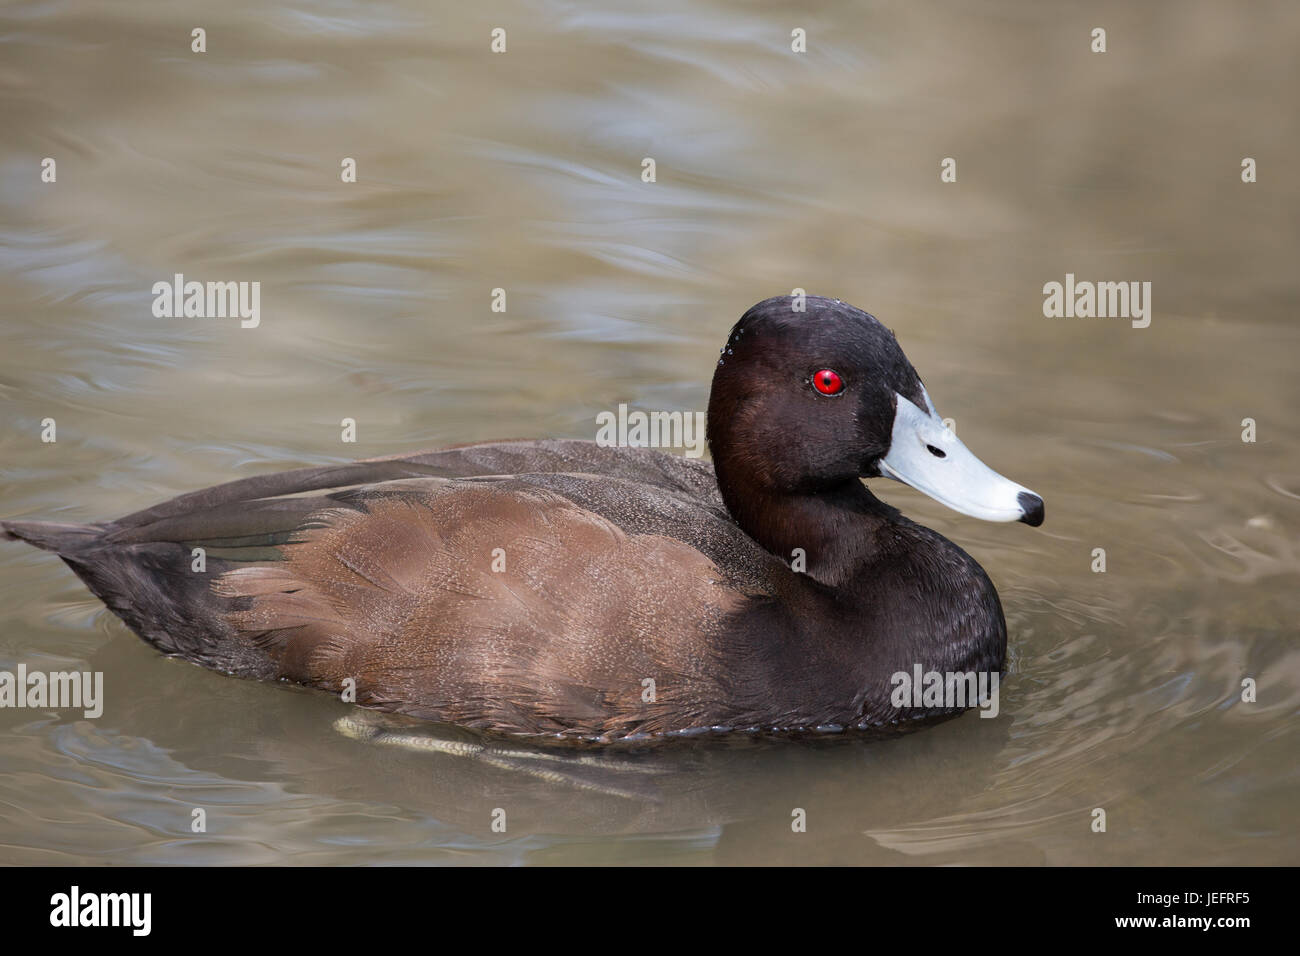 African or Southern Pochard Netta erythrophthalma. Drake or male. - Stock Image